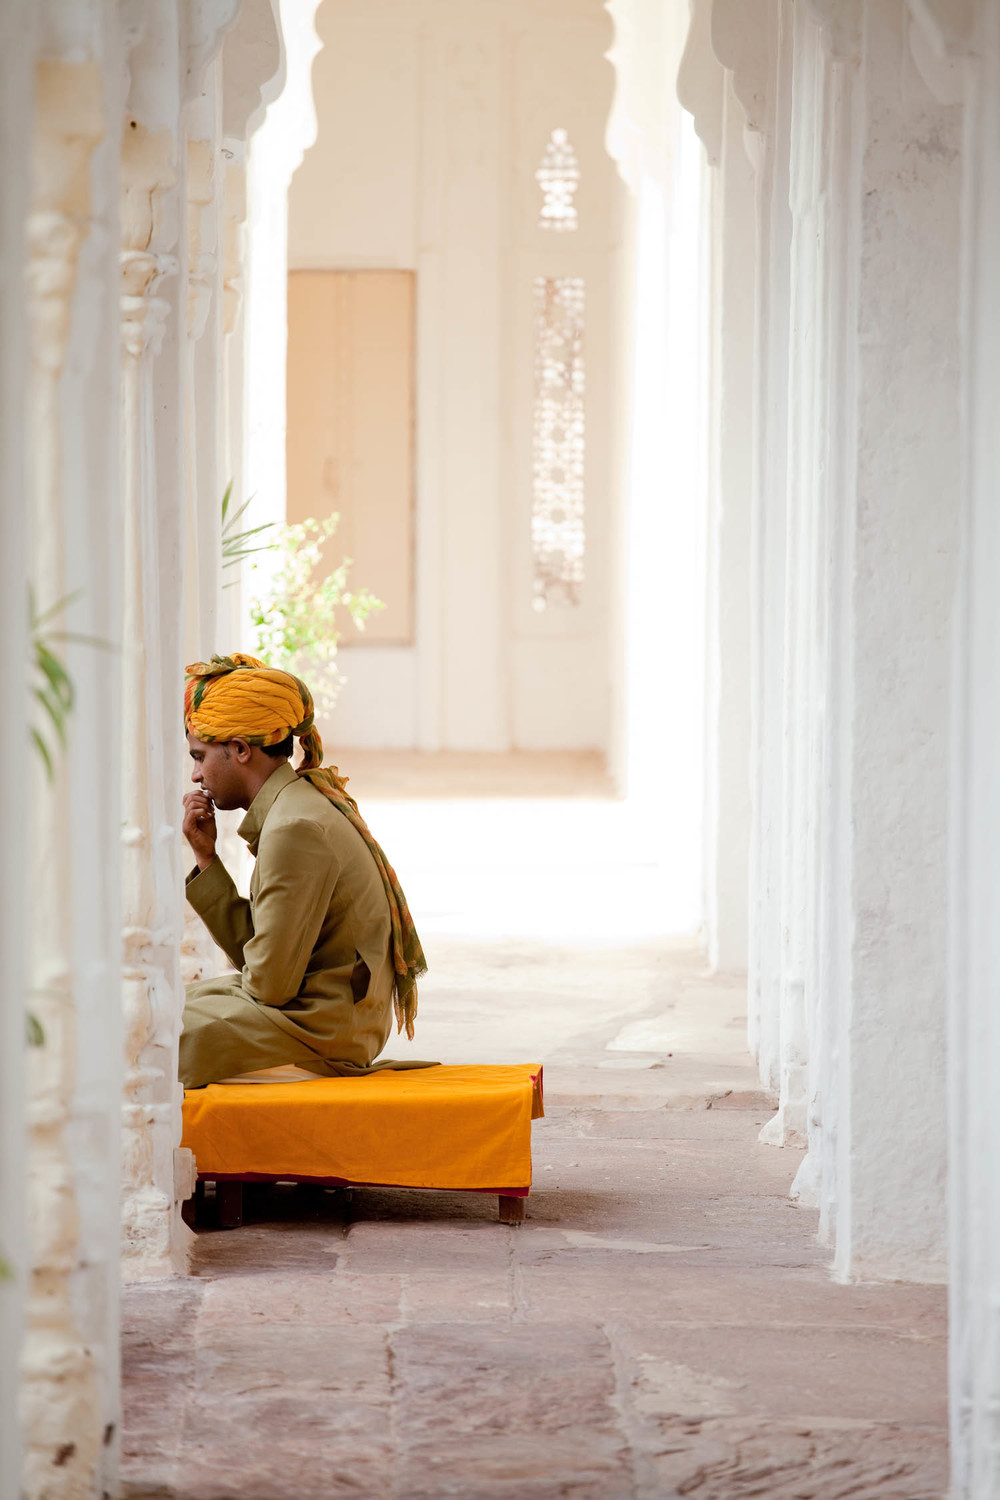 Idian-musician-thinking-yellow-white-turban-jodpur-fort-rajasthan-india-asia-travel